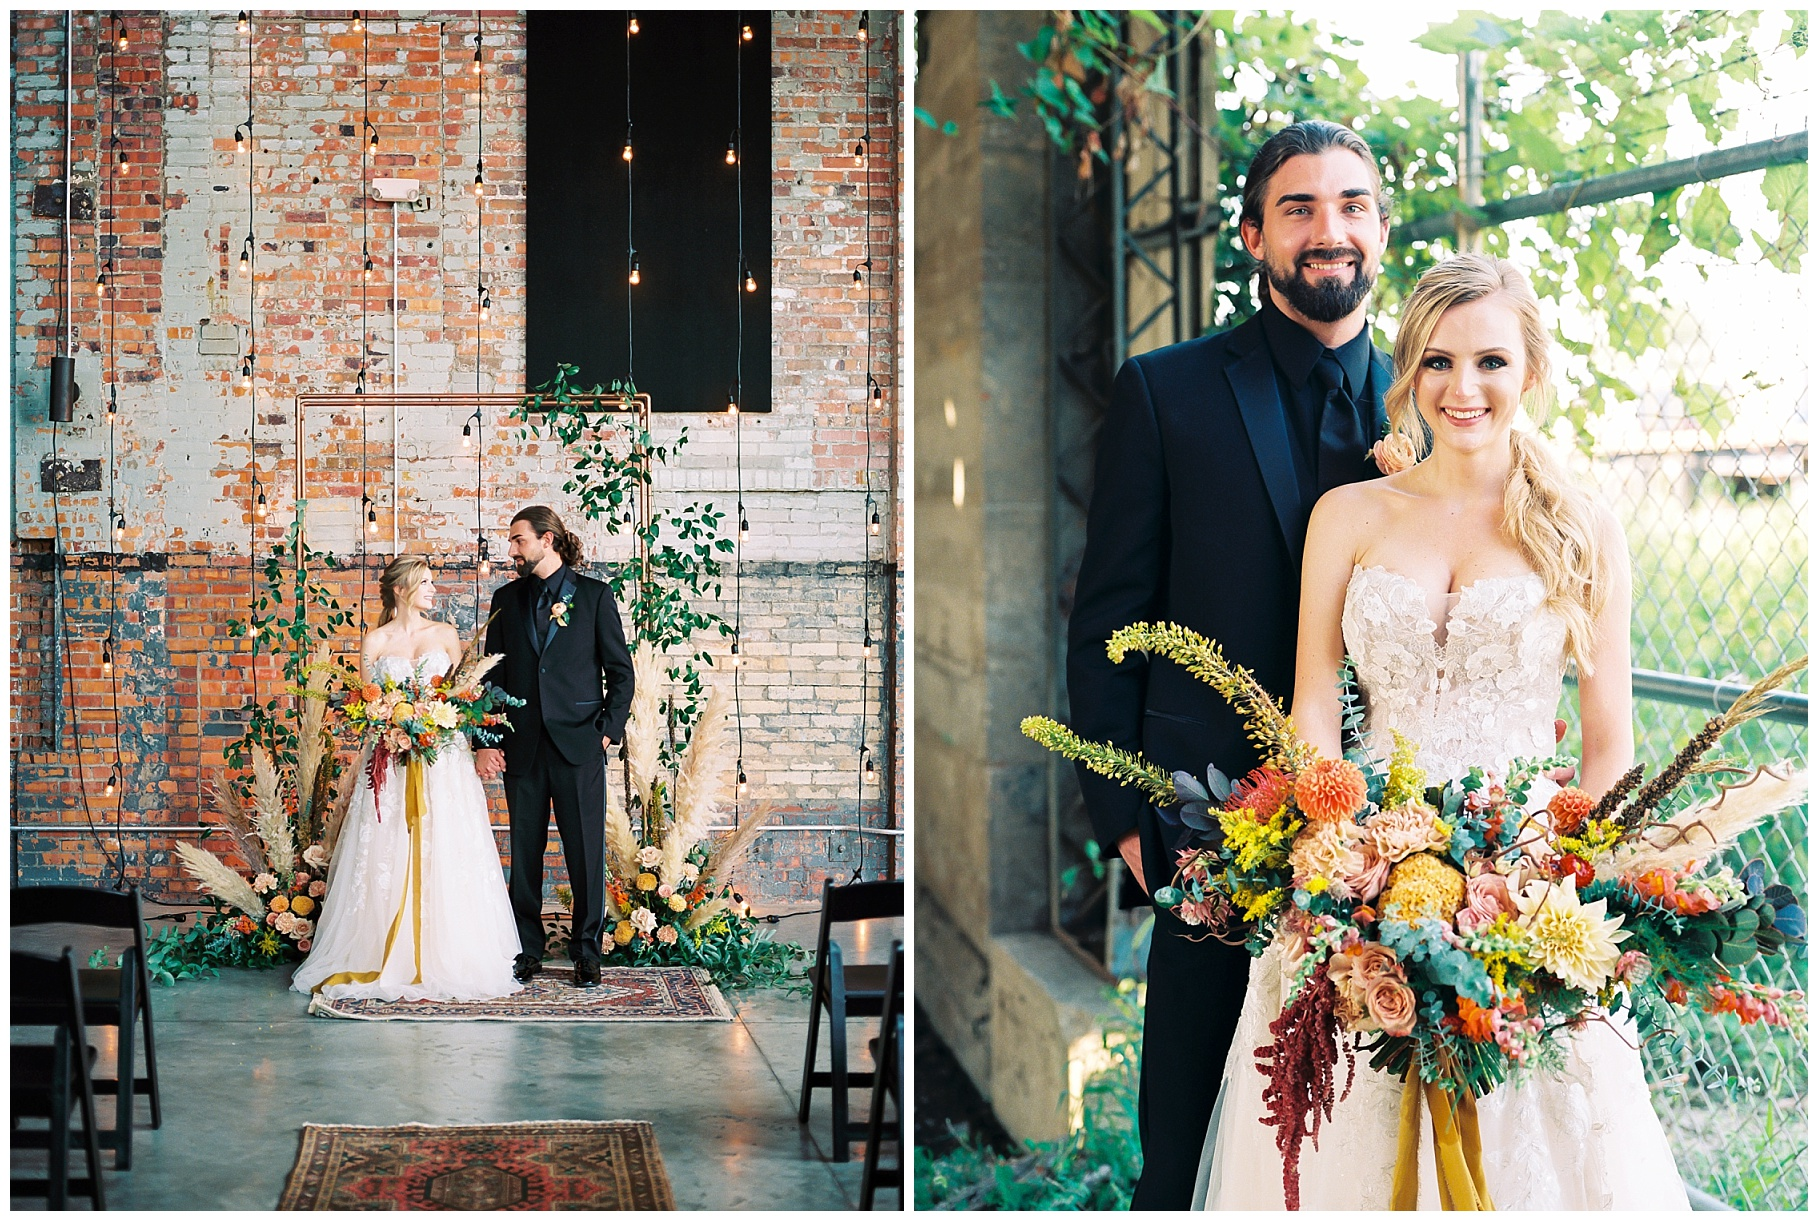 Urban Romance Wedding with Copper Accents at The Millbottom by Kelsi Kliethermes Photography Best Columbia Missouri Wedding Photographer_0061.jpg